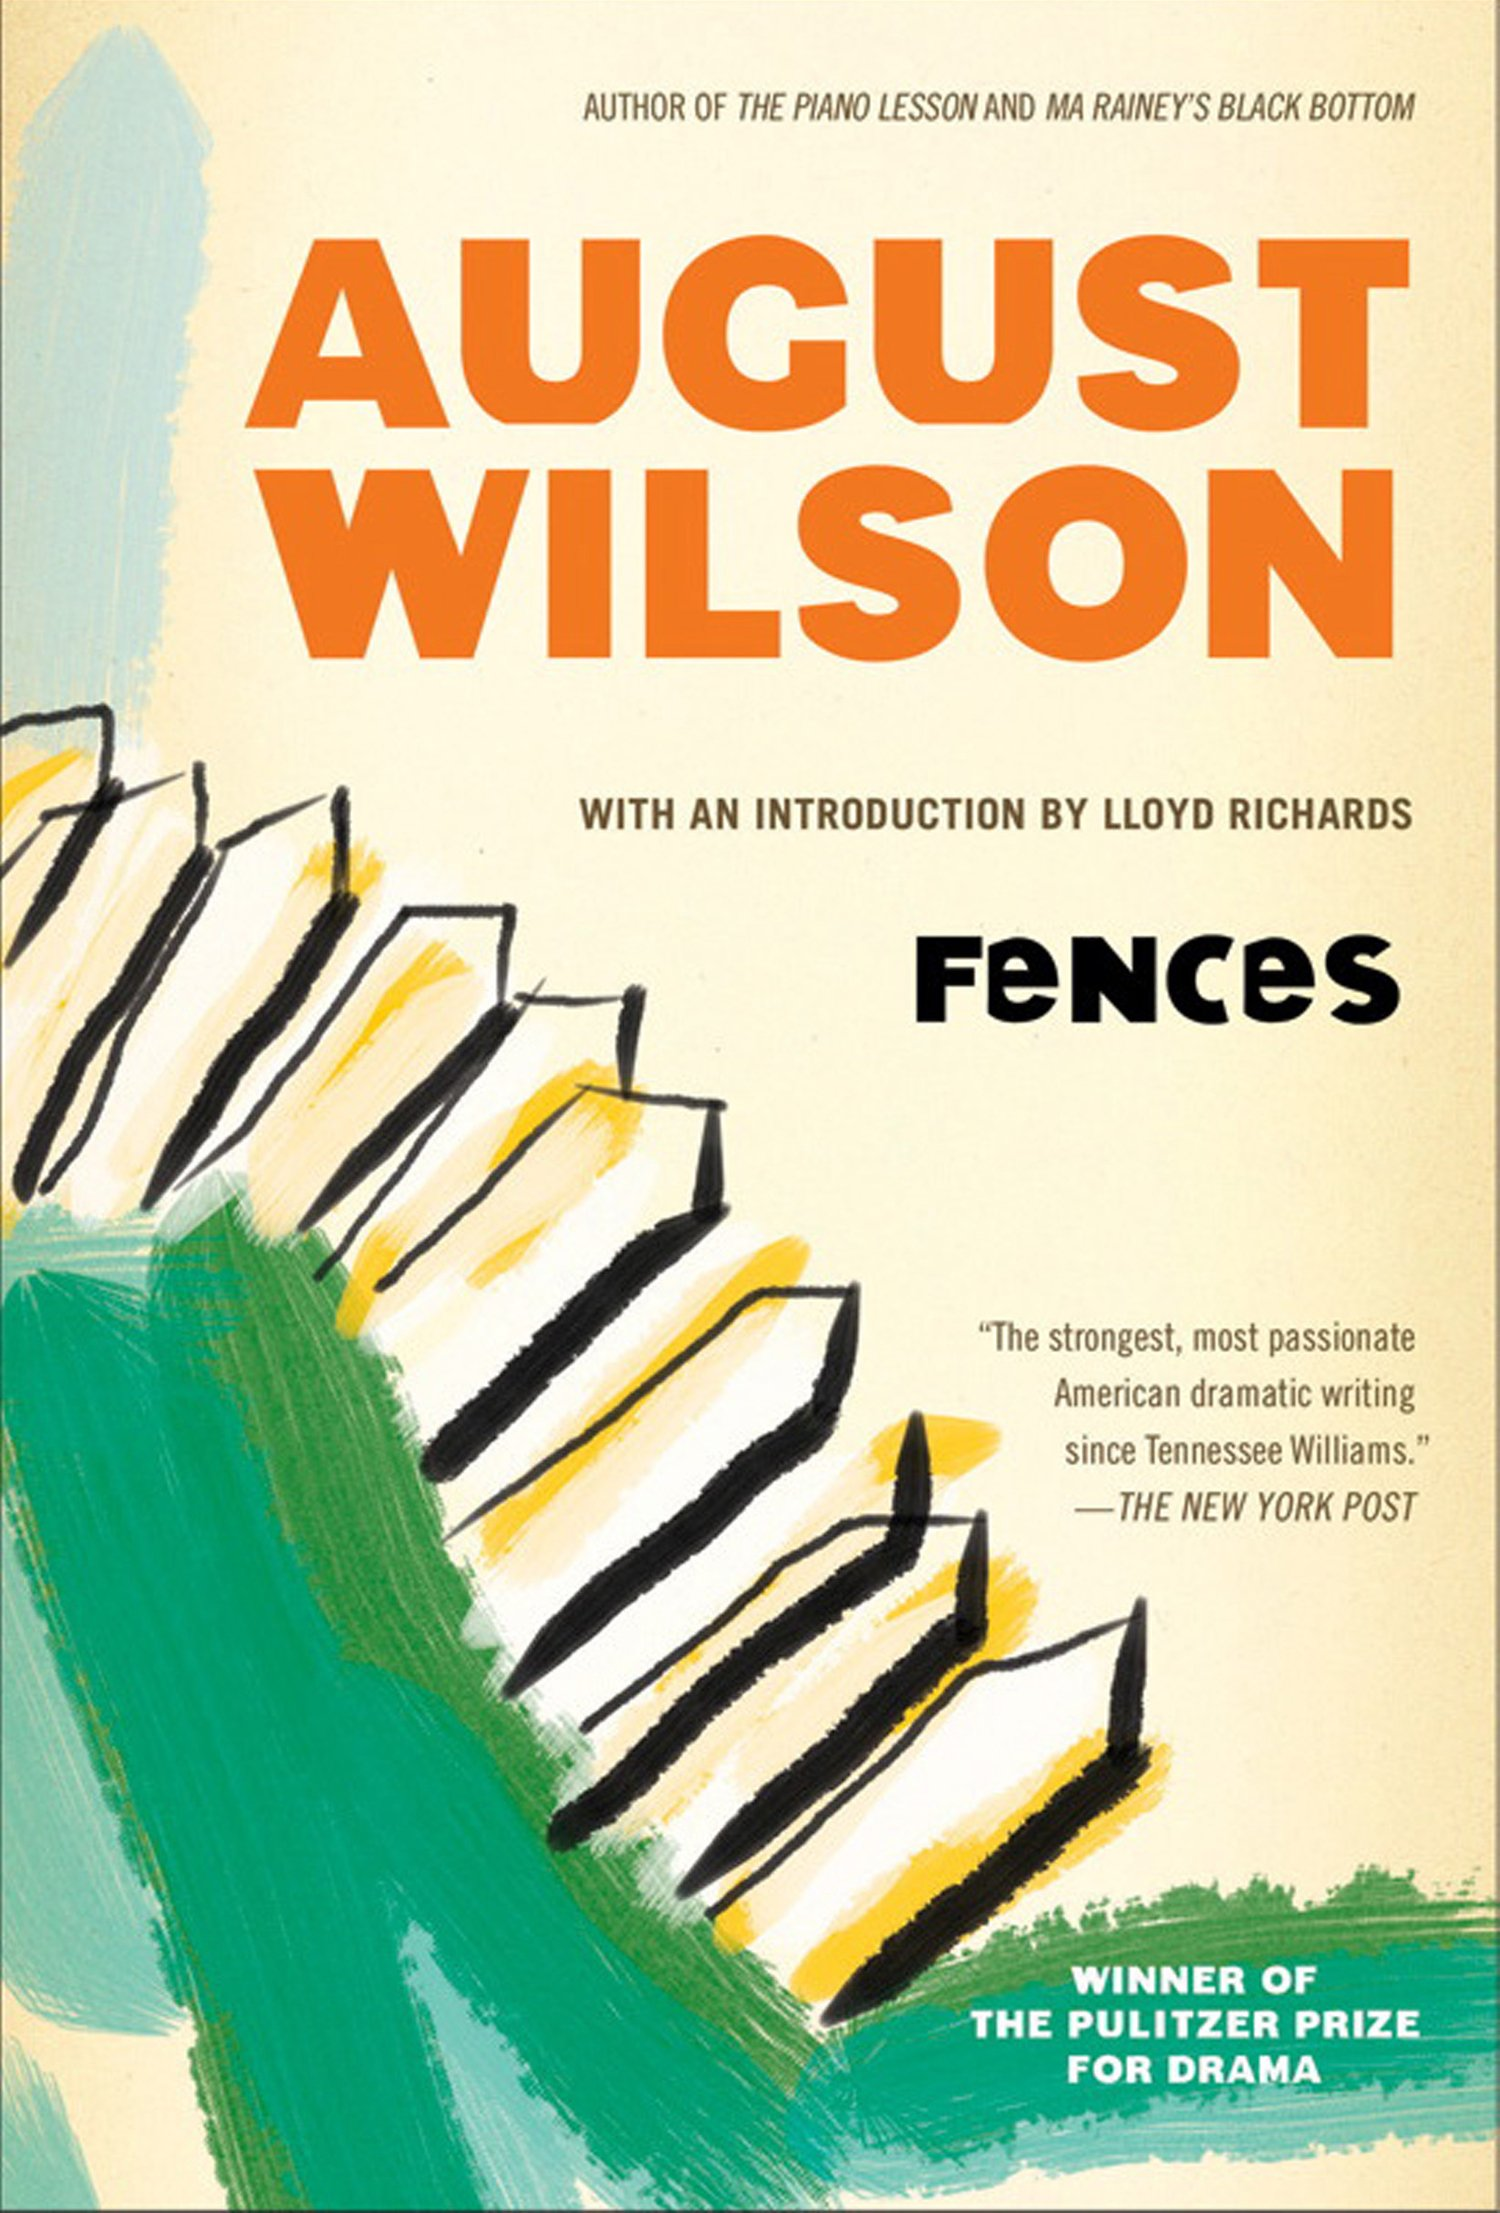 fences august wilson Fences study guide contains a biography of august wilson, literature essays, quiz questions, major themes, characters, and a full summary and analysis.